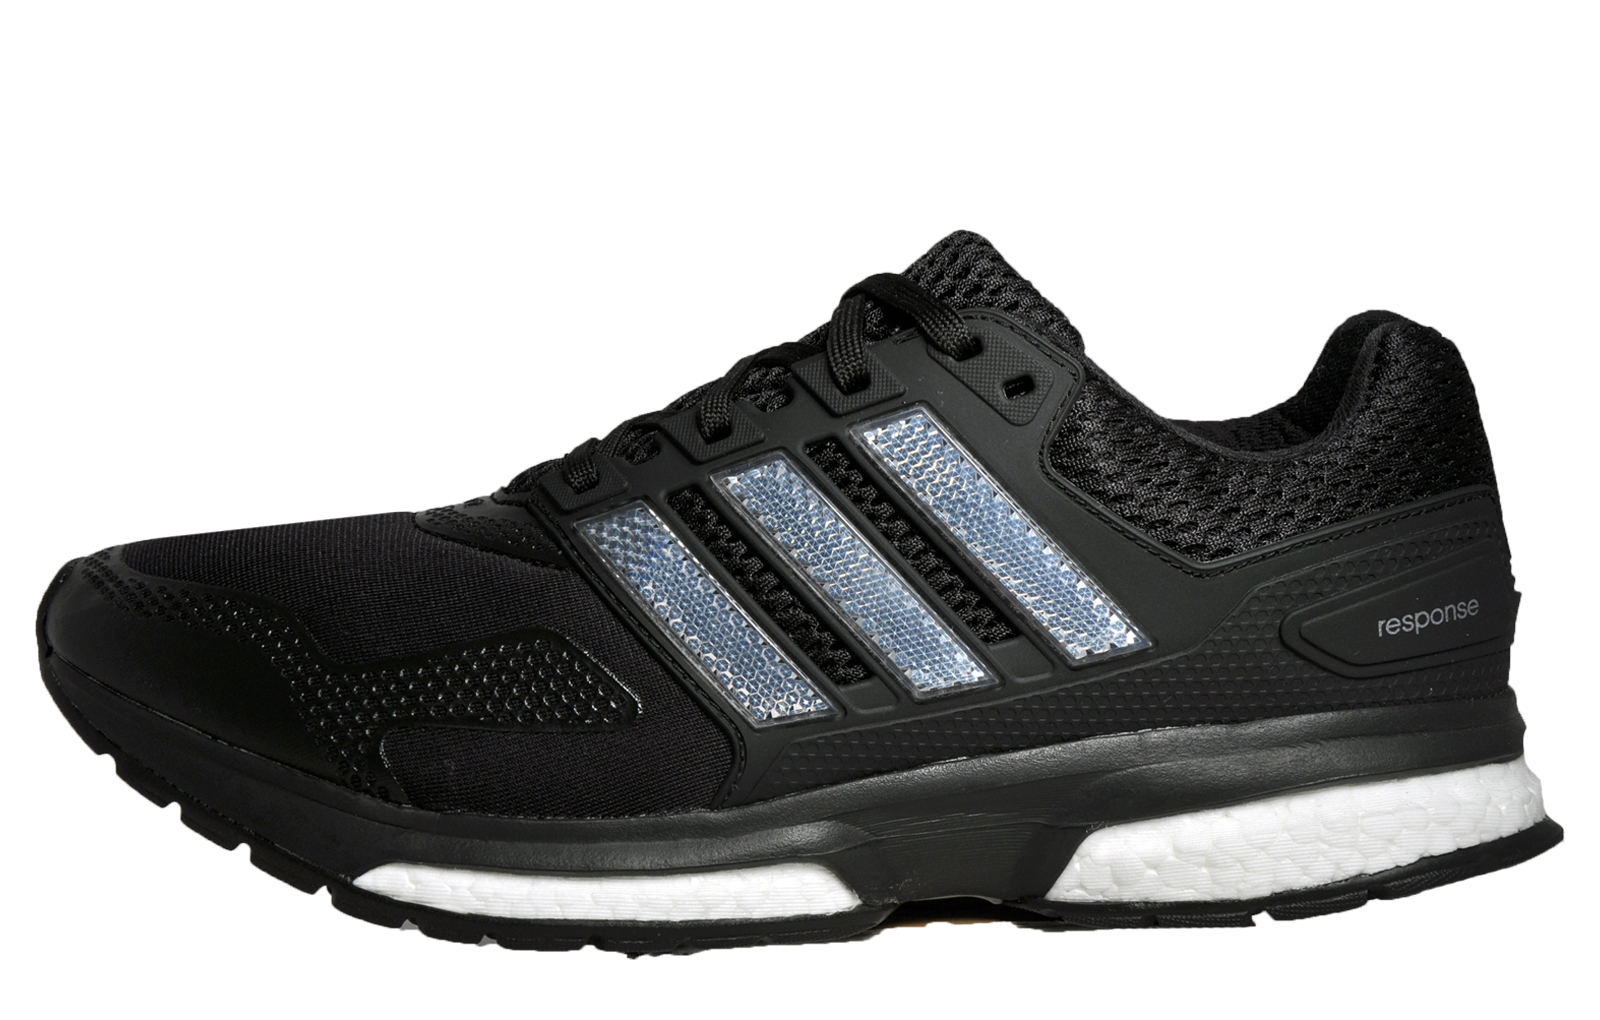 Adidas Response Boost 2 Techfit Mens Running Shoes Fitness Gym Trainers  Black e397a9e95